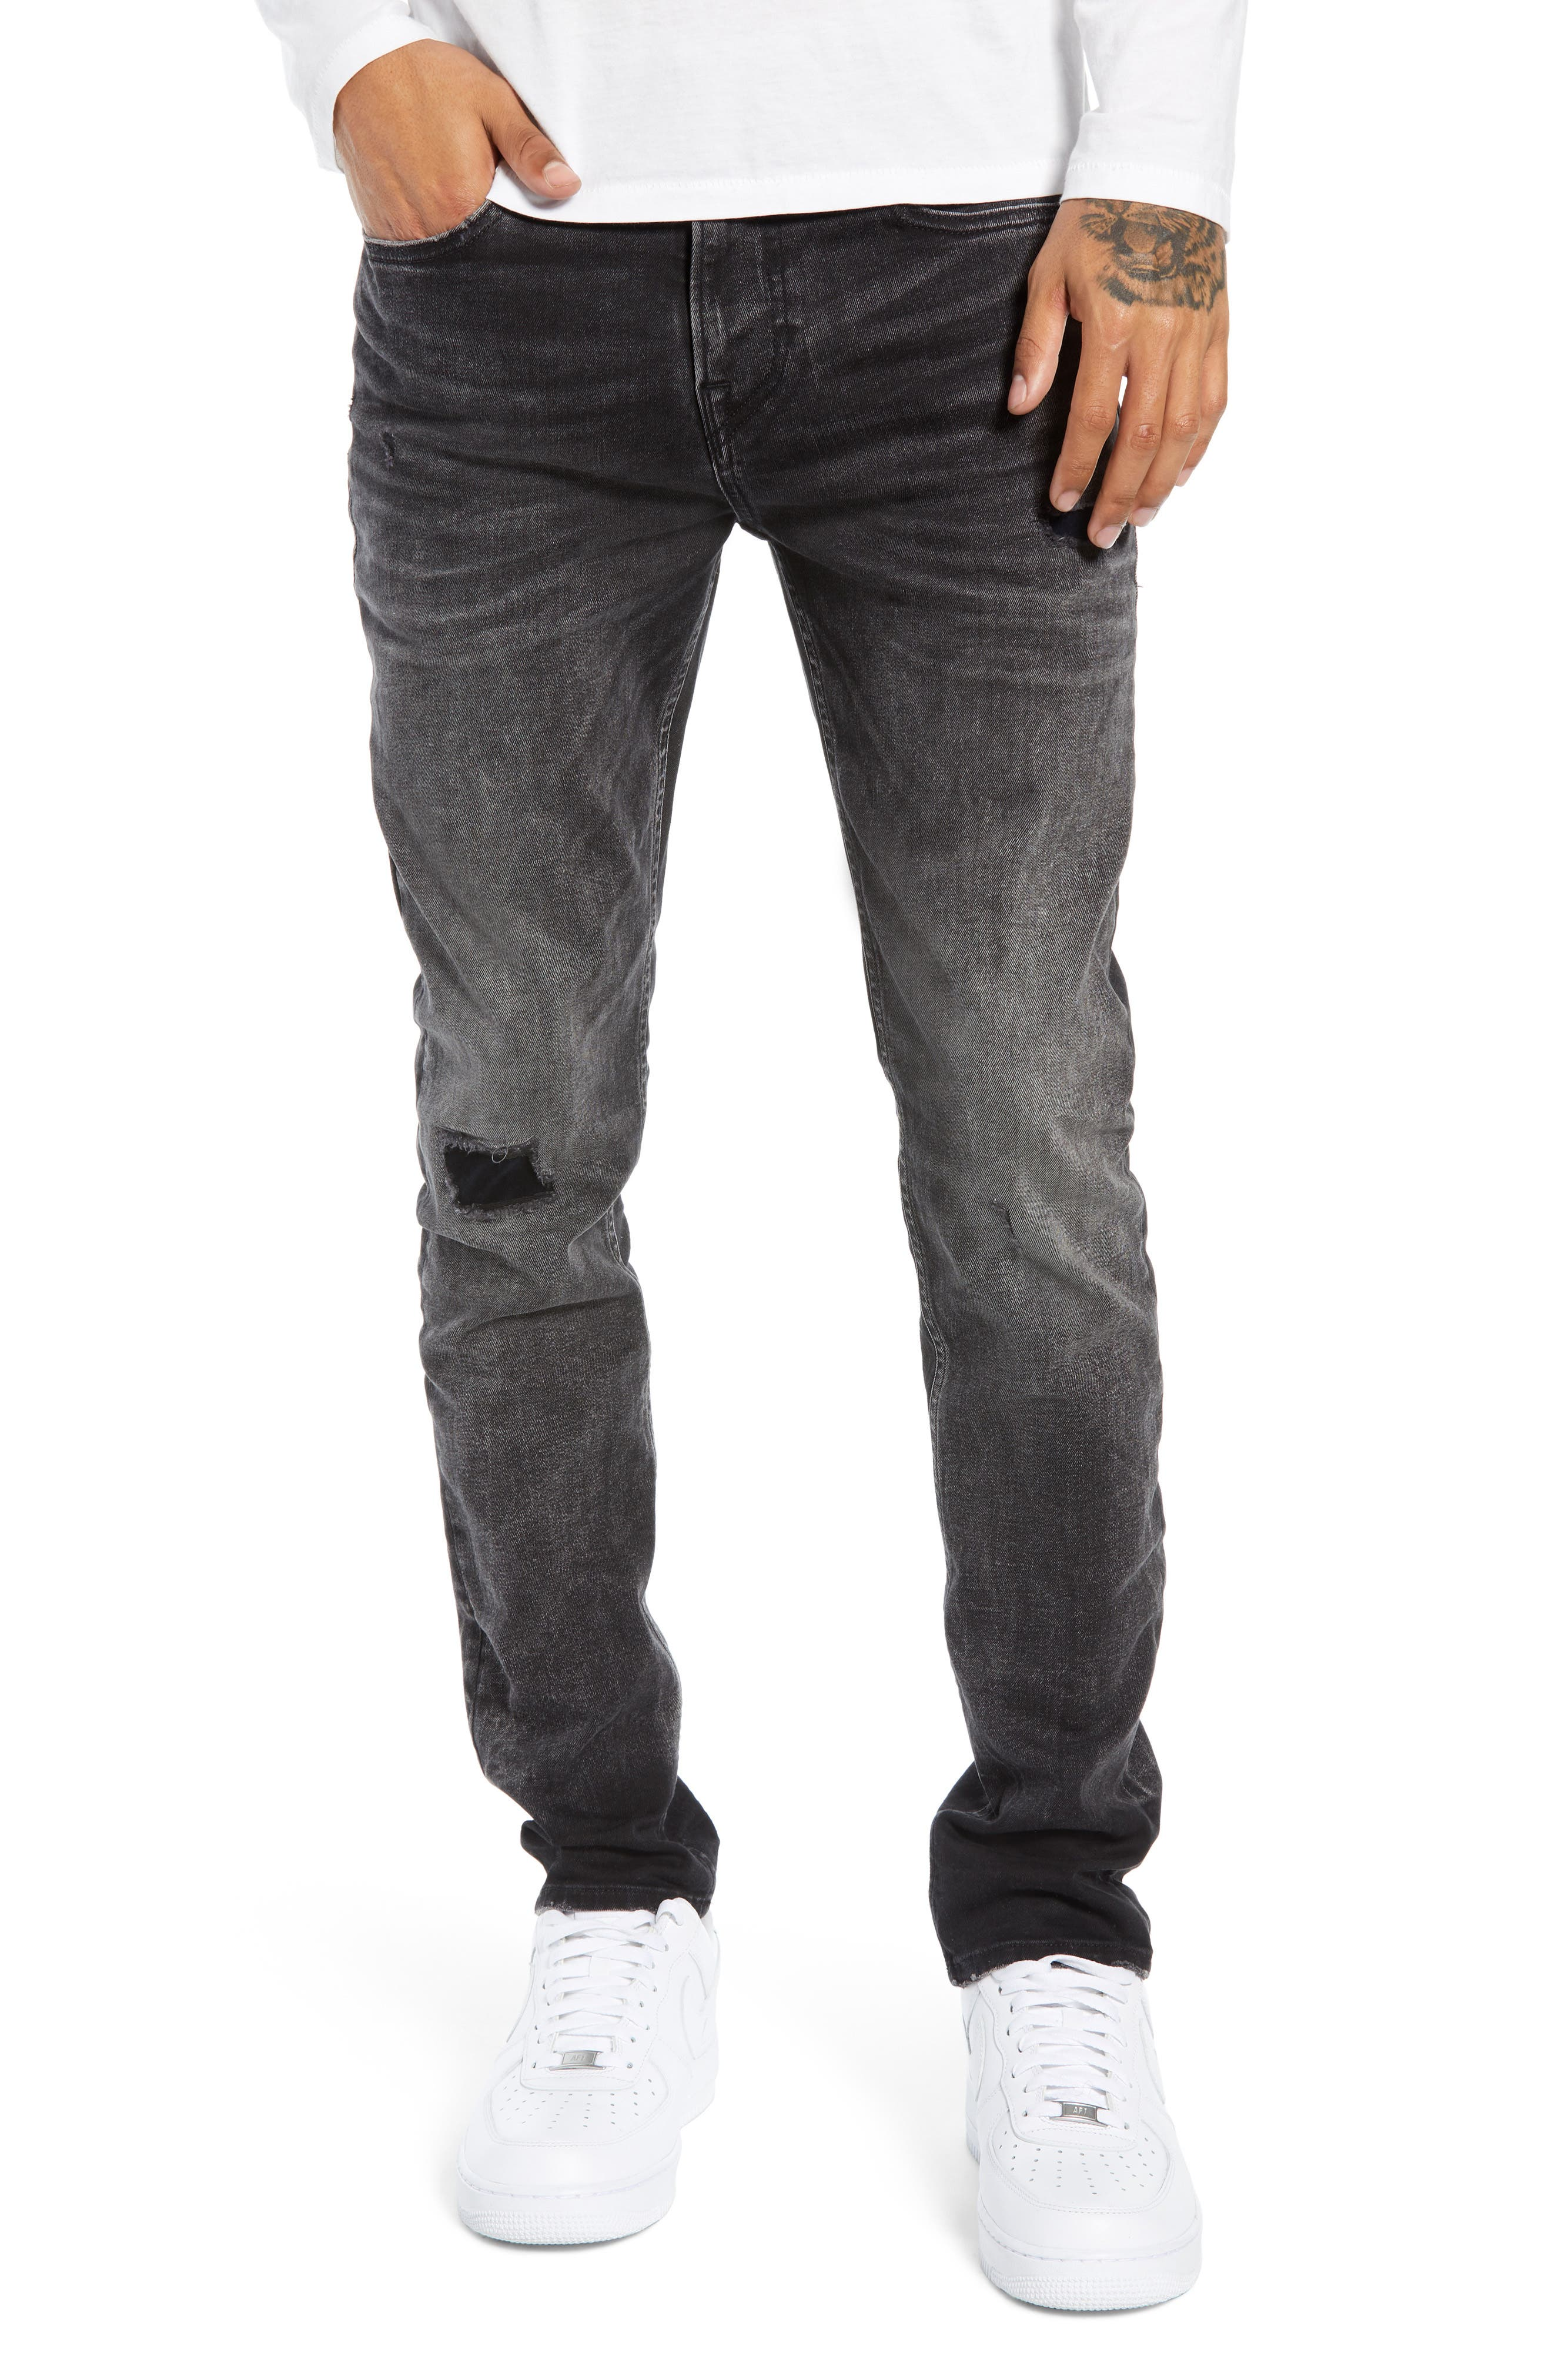 HUDSON JEANS,                             Axl Skinny Fit Jeans,                             Main thumbnail 1, color,                             DELUXE